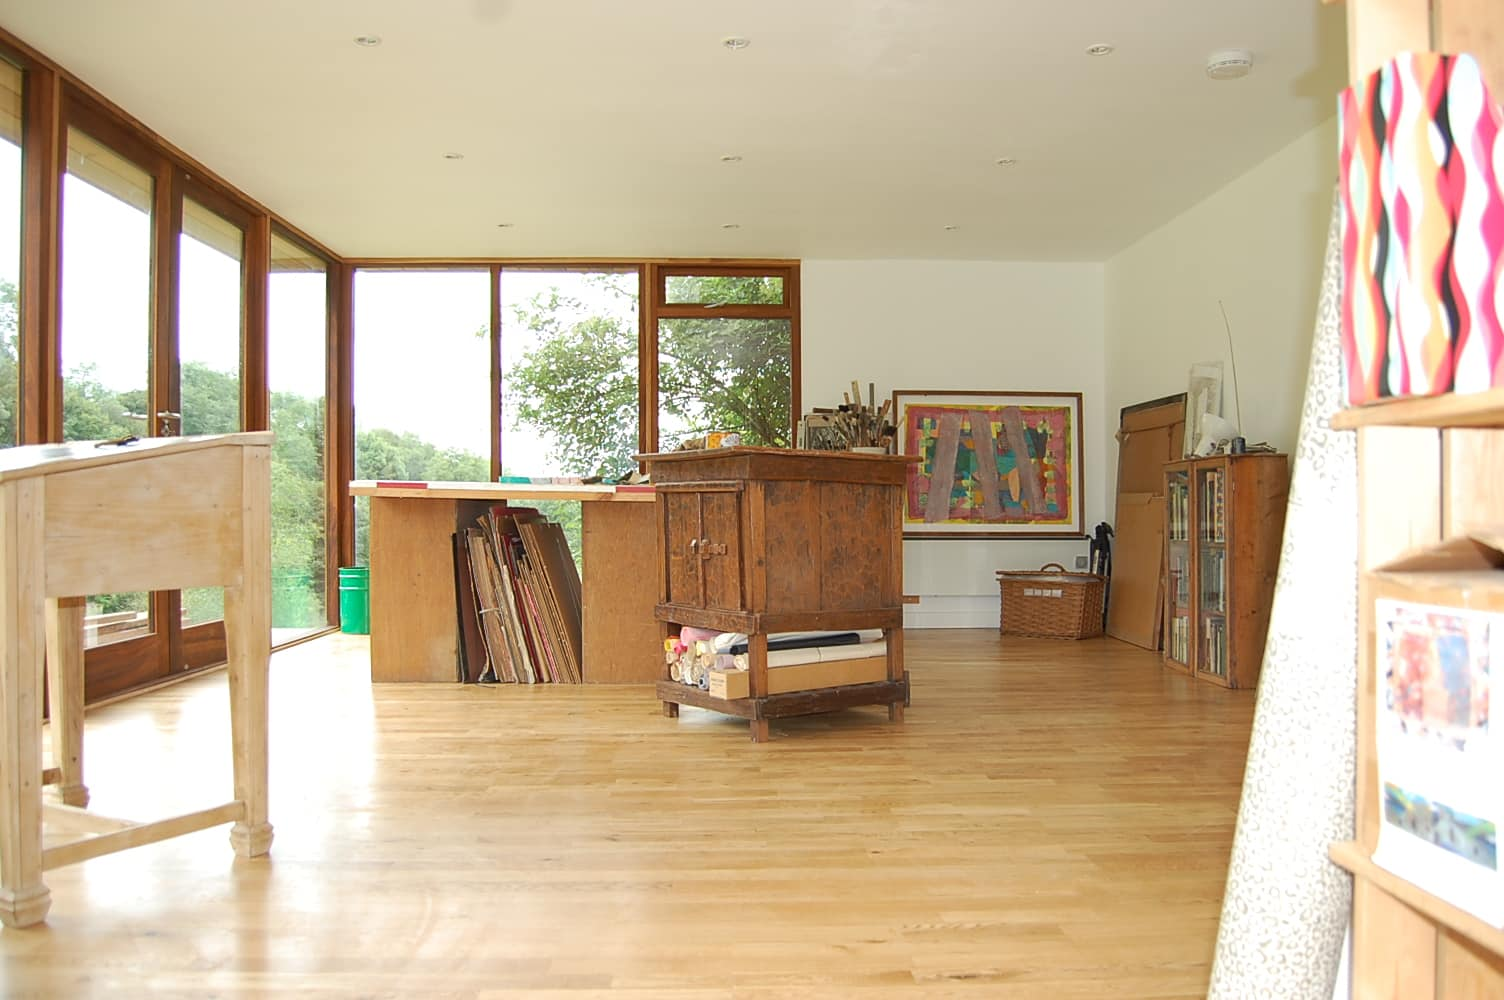 Inside a garden room art studio